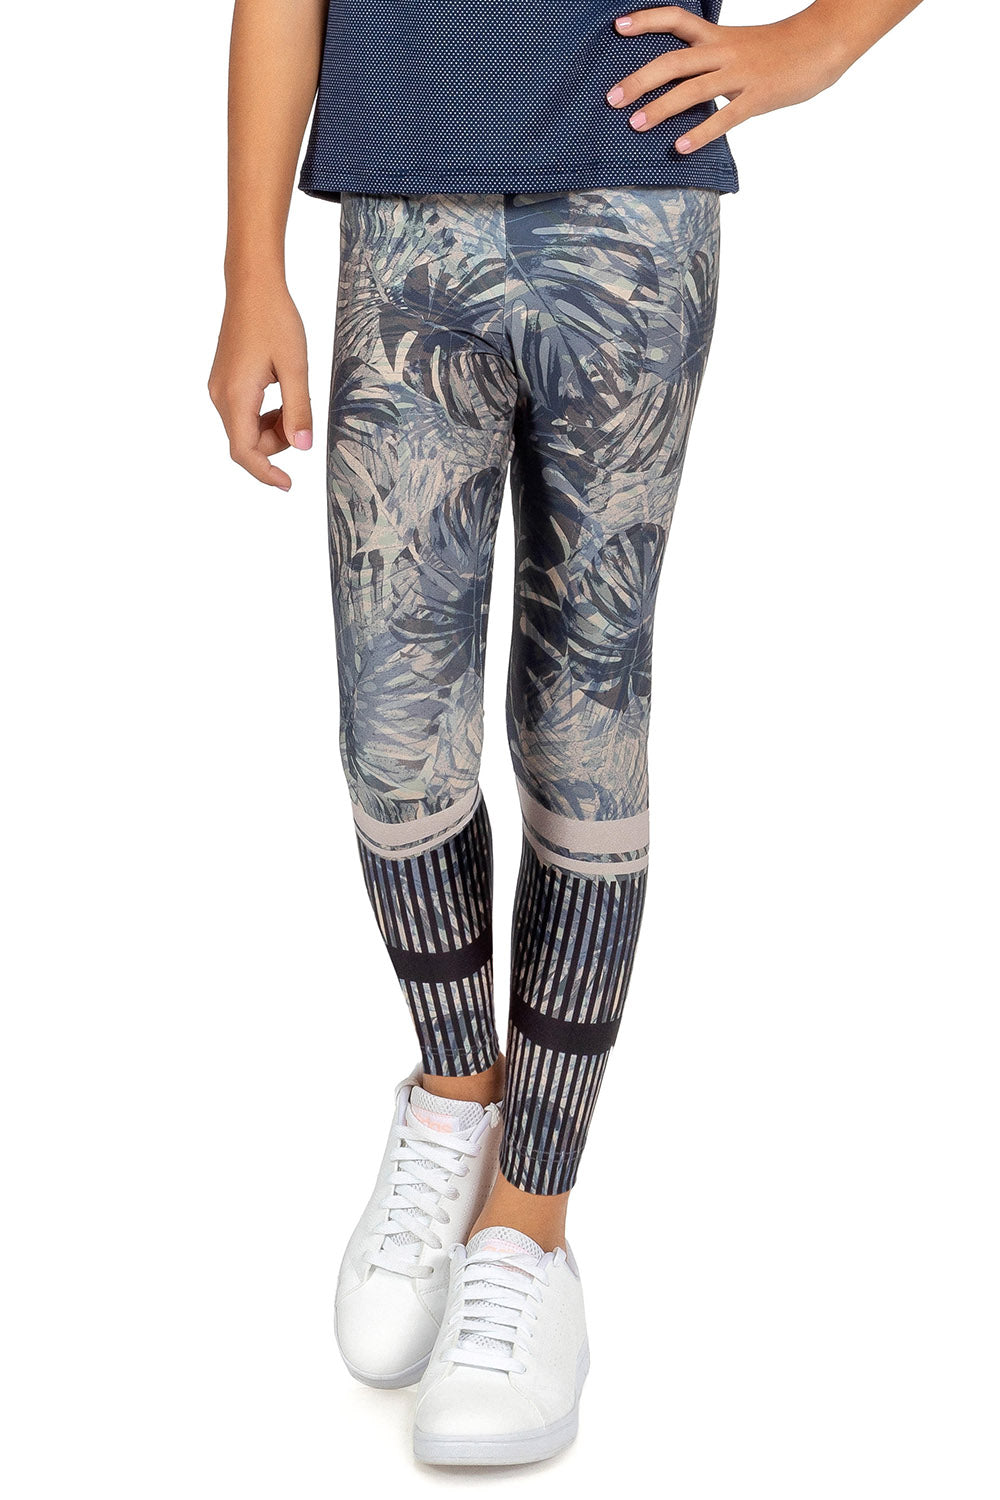 Discover Movement Kids Legging